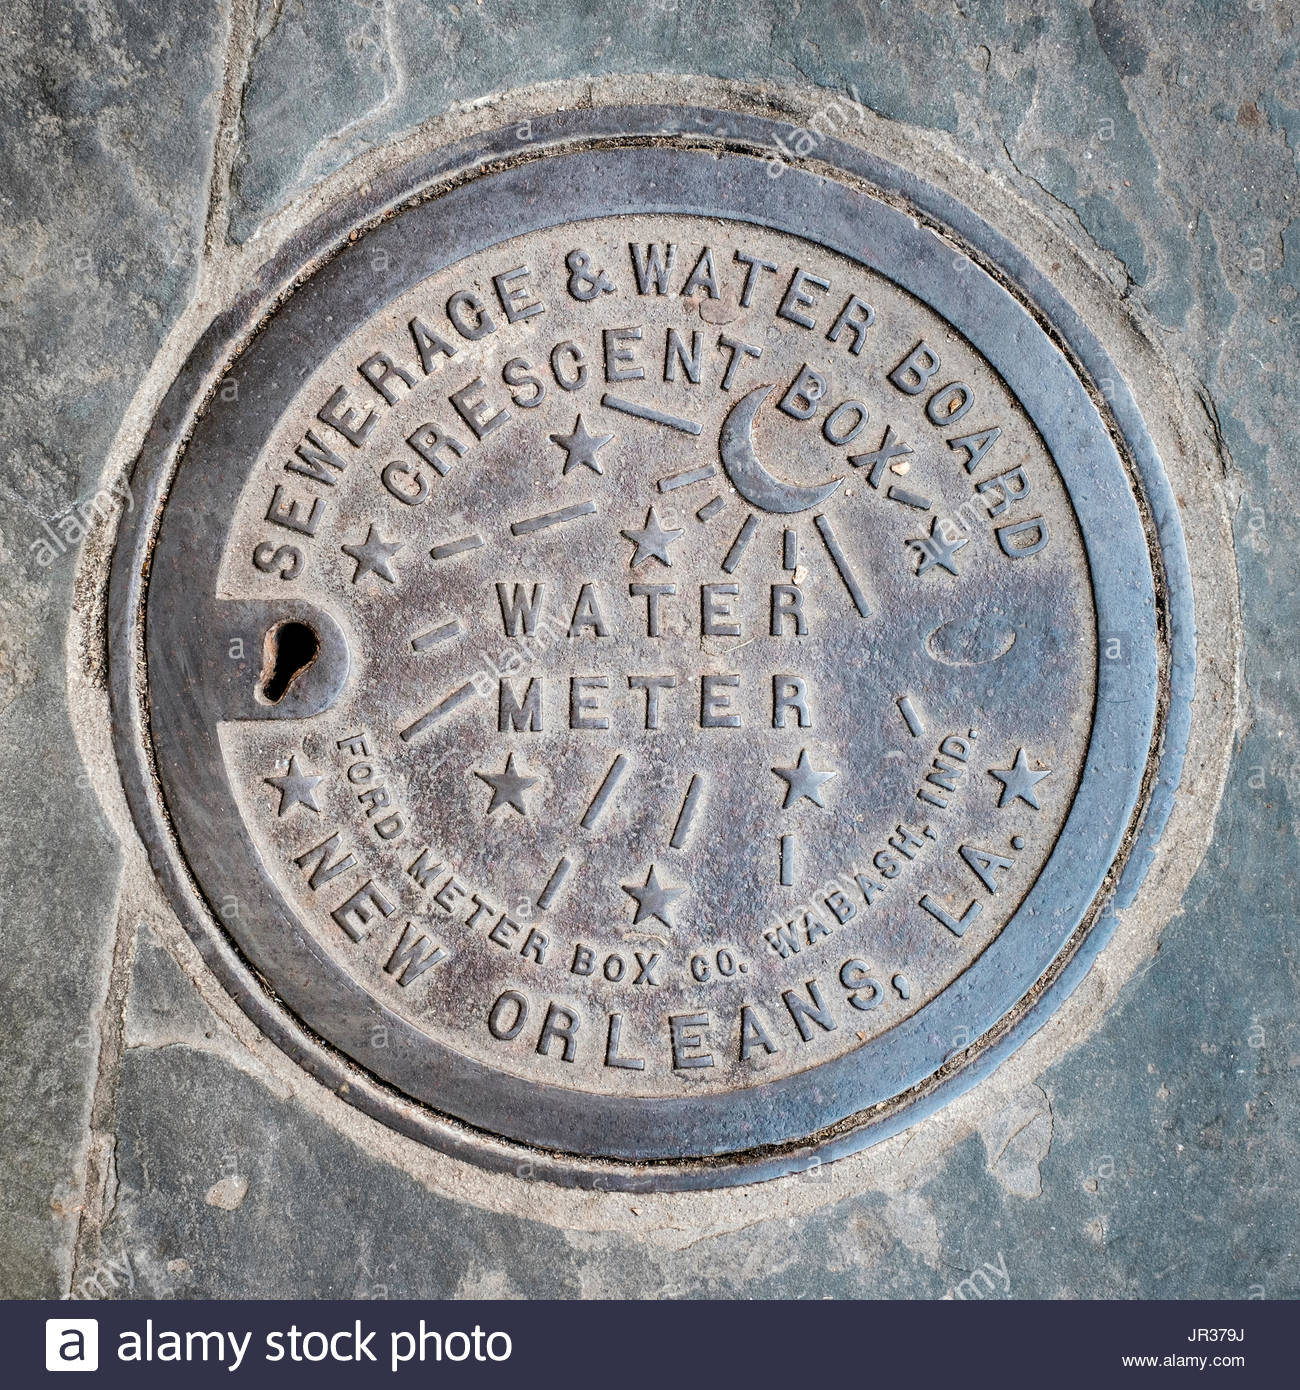 United States, Louisiana, New Orleans, French Quarter. Vintage water meter cover, Sewerage and Water Board. - Stock Image